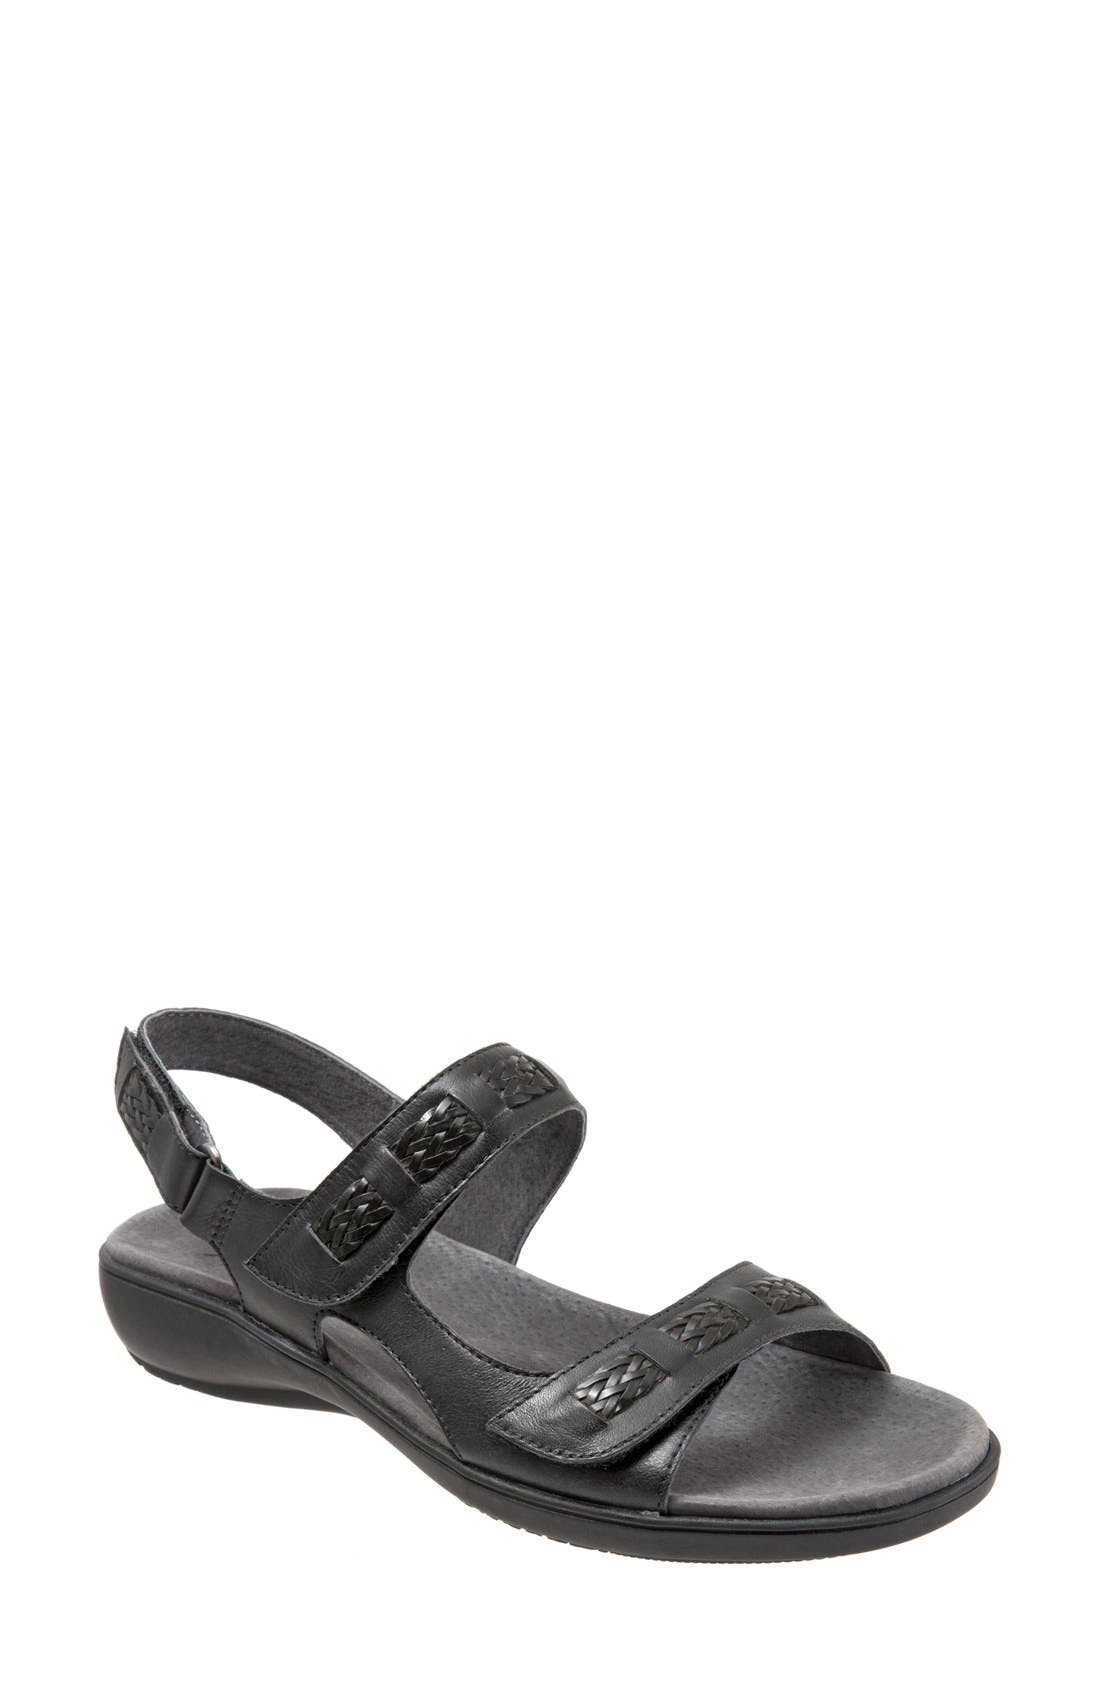 Alternate Image 1 Selected - Trotters 'Kip' Sandal (Women)